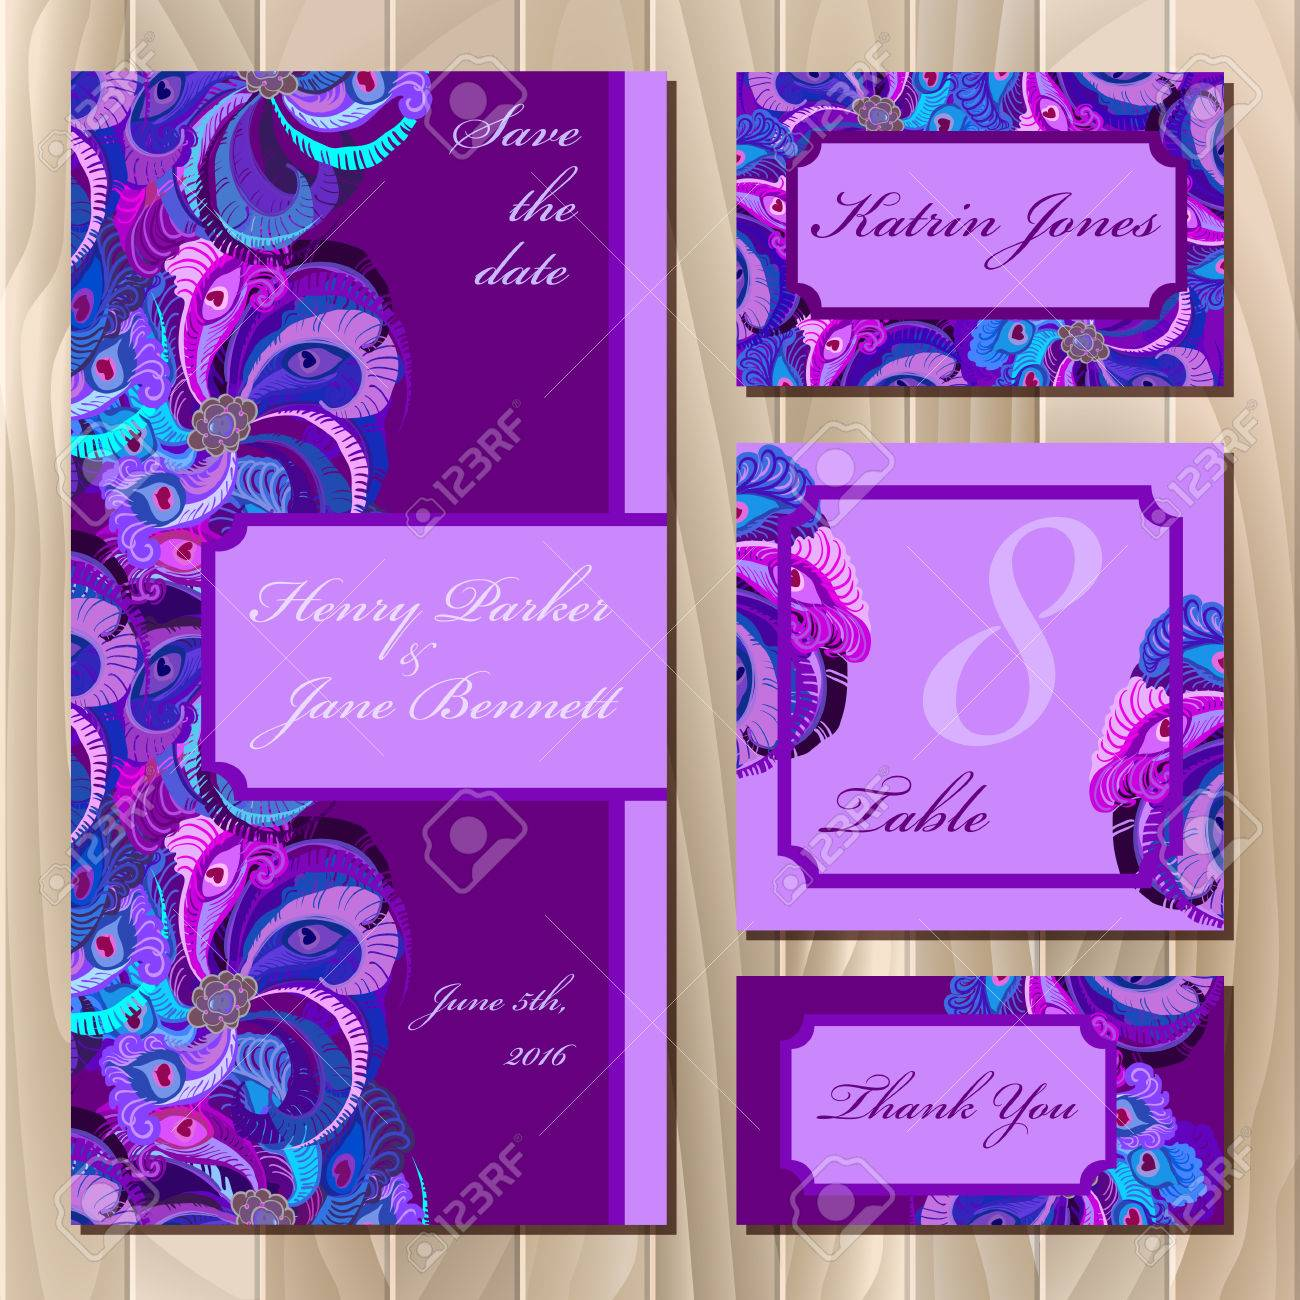 image about Printable Backgrounds referred to as Preset of violet printable backgrounds in the direction of rejoice the marriage ceremony